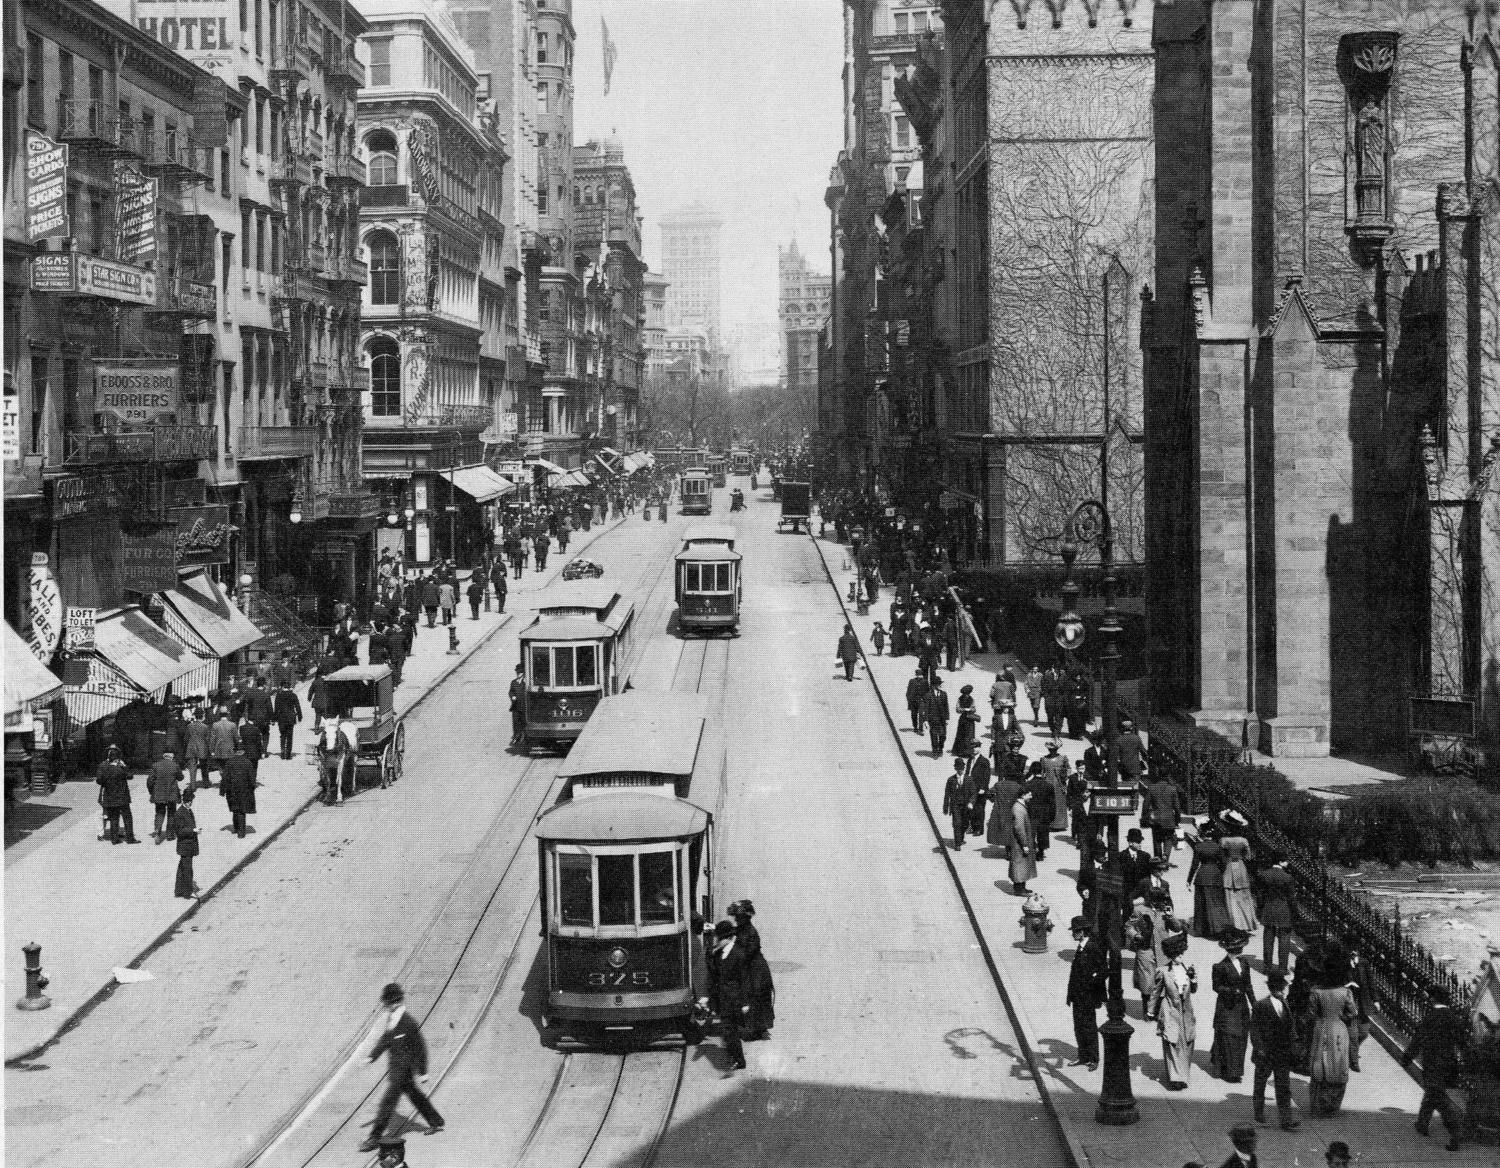 Broadway and East 10th Street, New York City, 1911